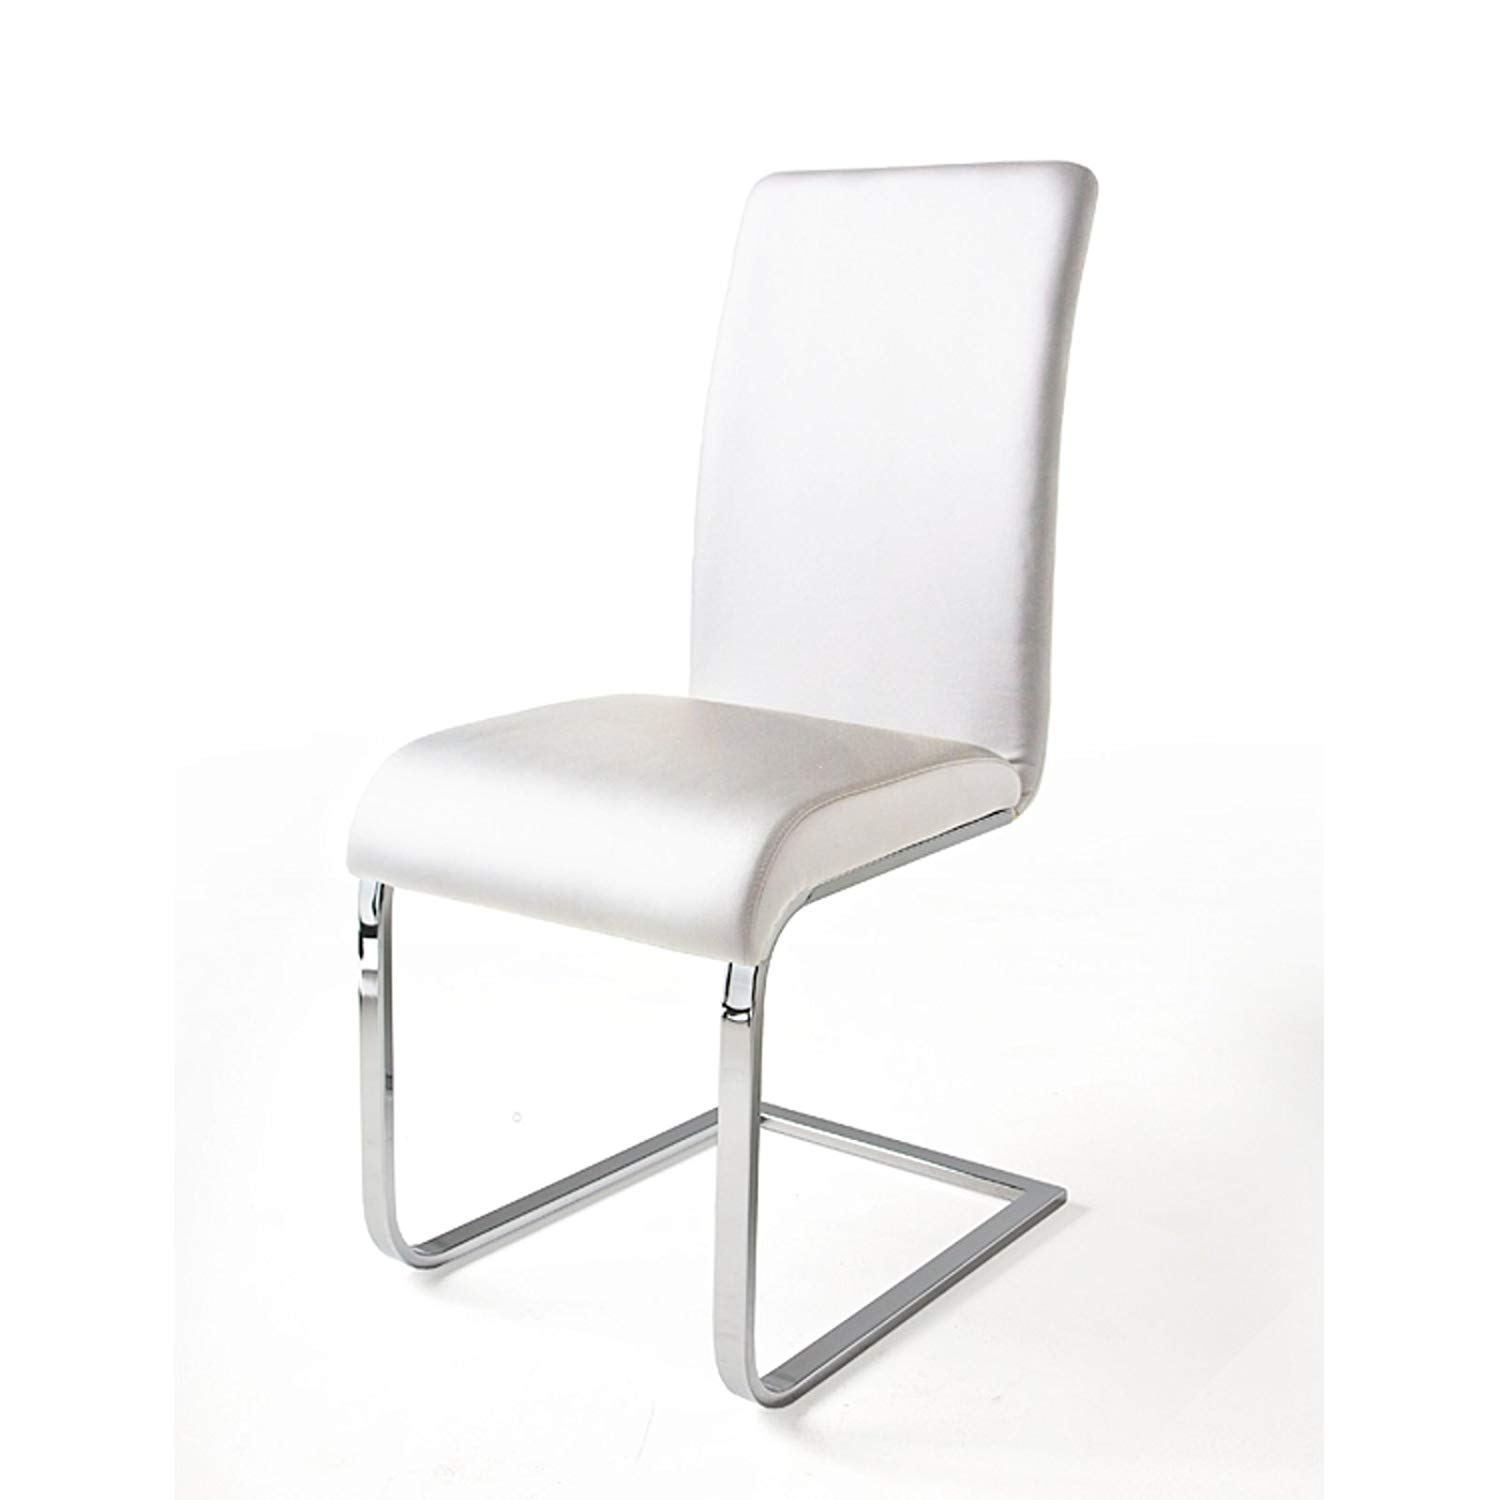 Tips On Making Simple Dining Chairs With Metal Legs Work Like Designer Units In The Room